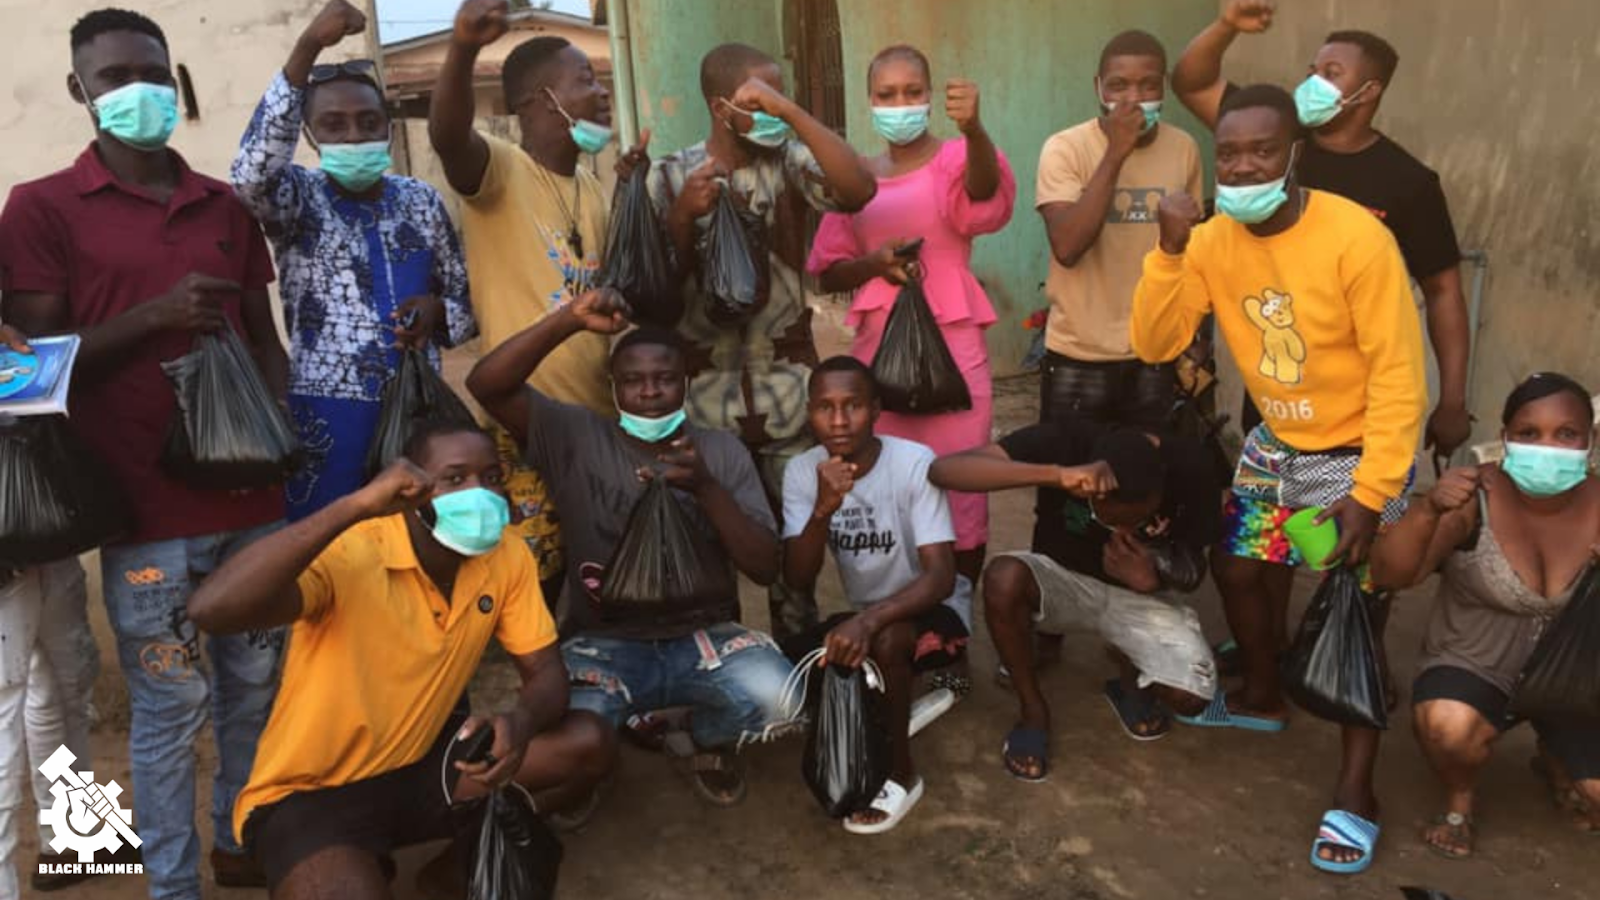 Nigeria Chapter passing out PPE, not waiting for the sellout government to act